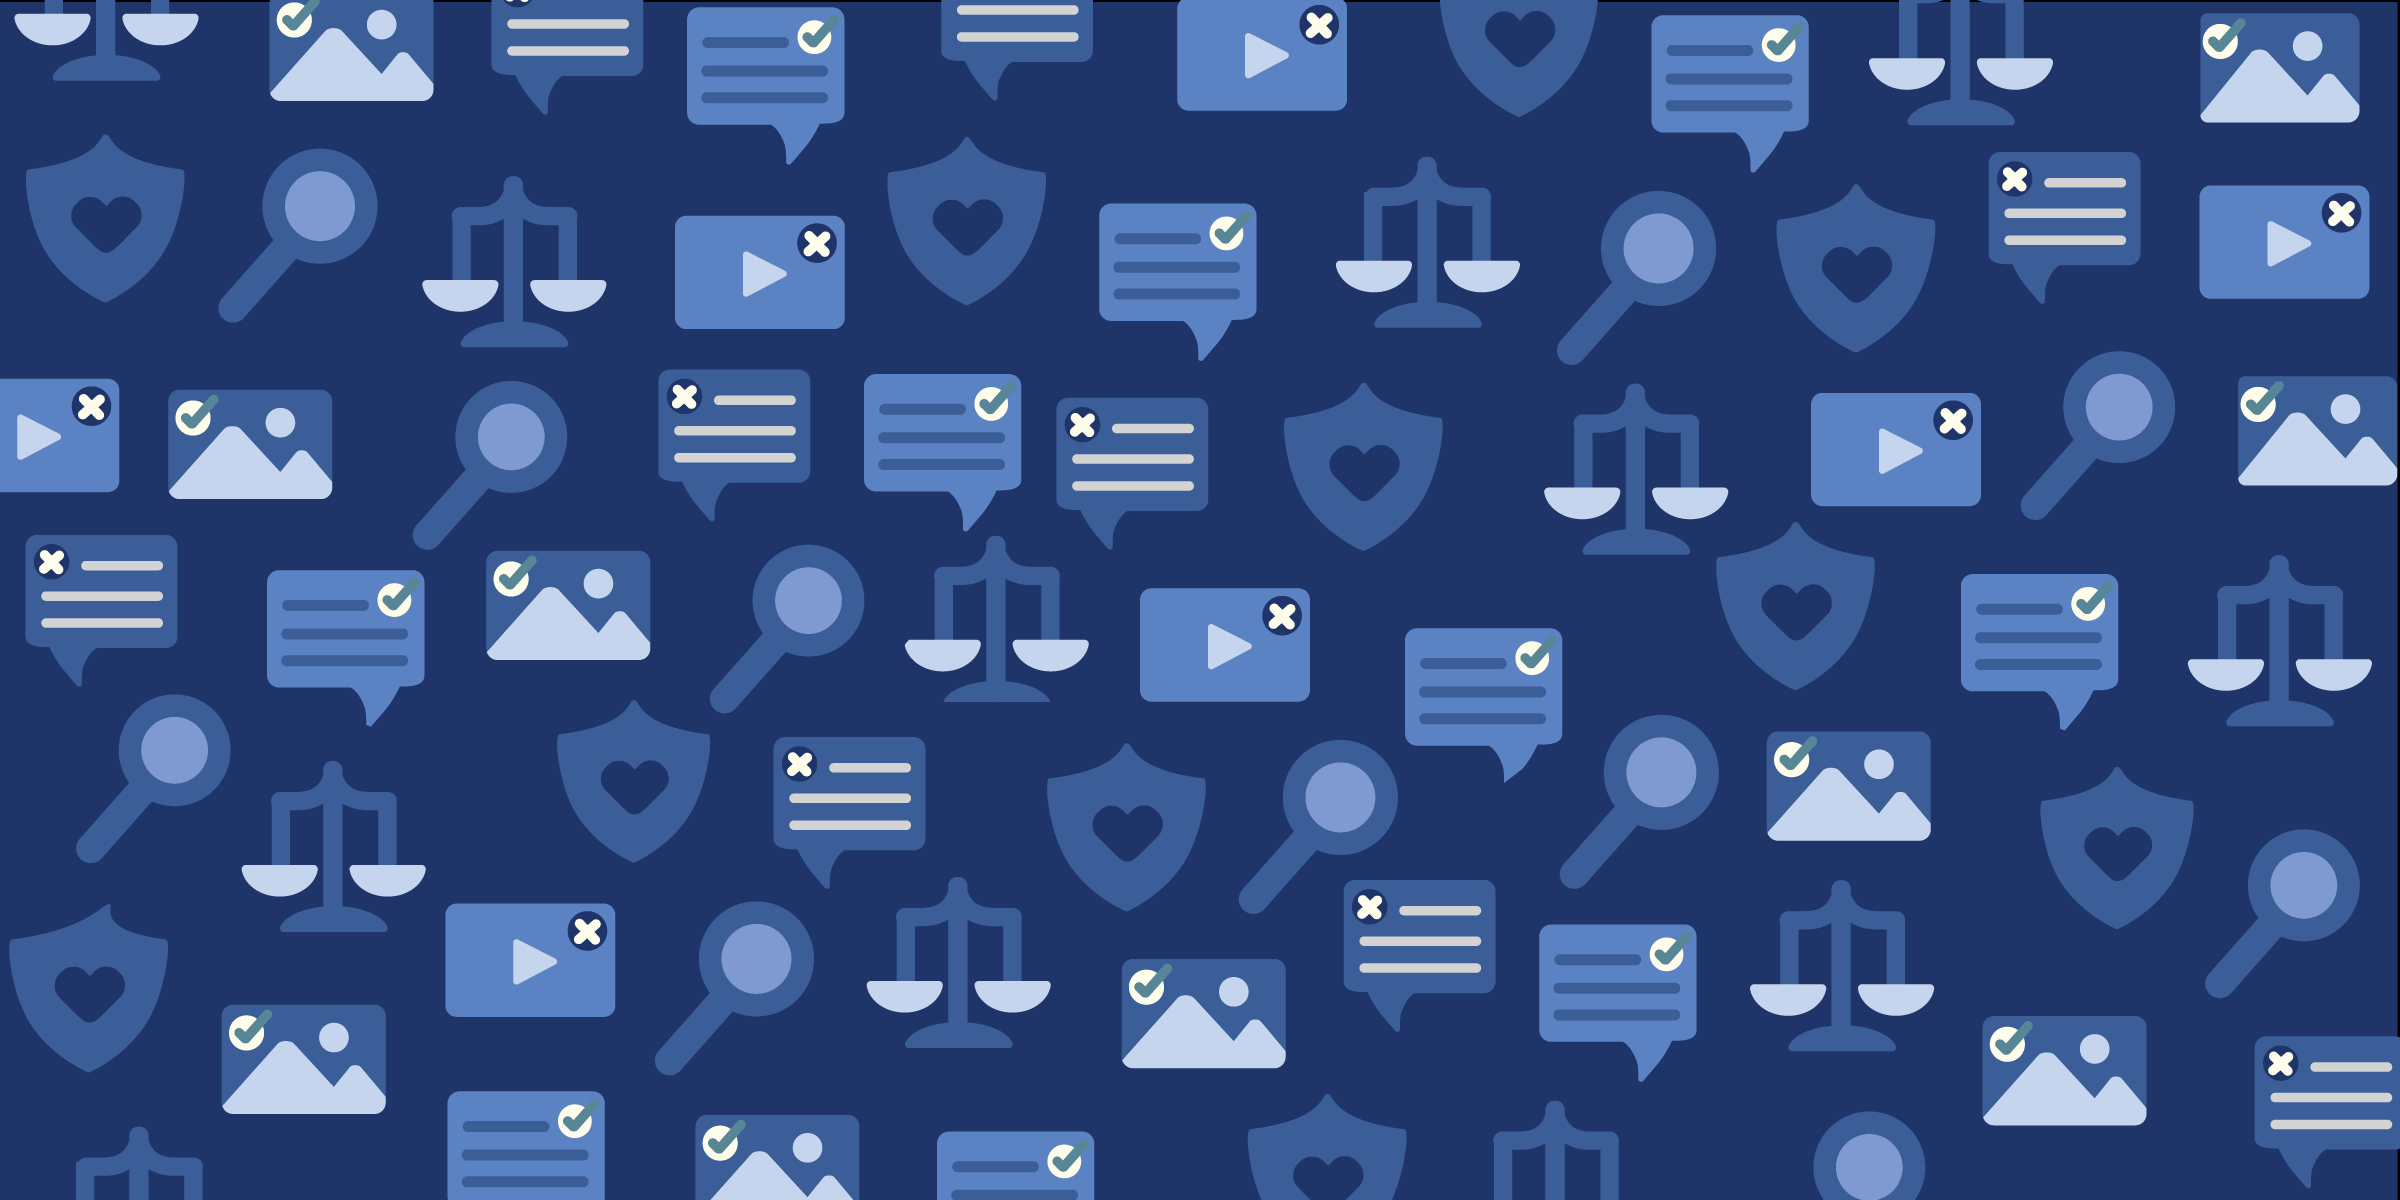 EFF, Human Rights Watch, and Over 70 Civil Society Groups Ask Mark Zuckerberg to Provide All Users with Mechanism to Appeal Content Censorship on Facebook